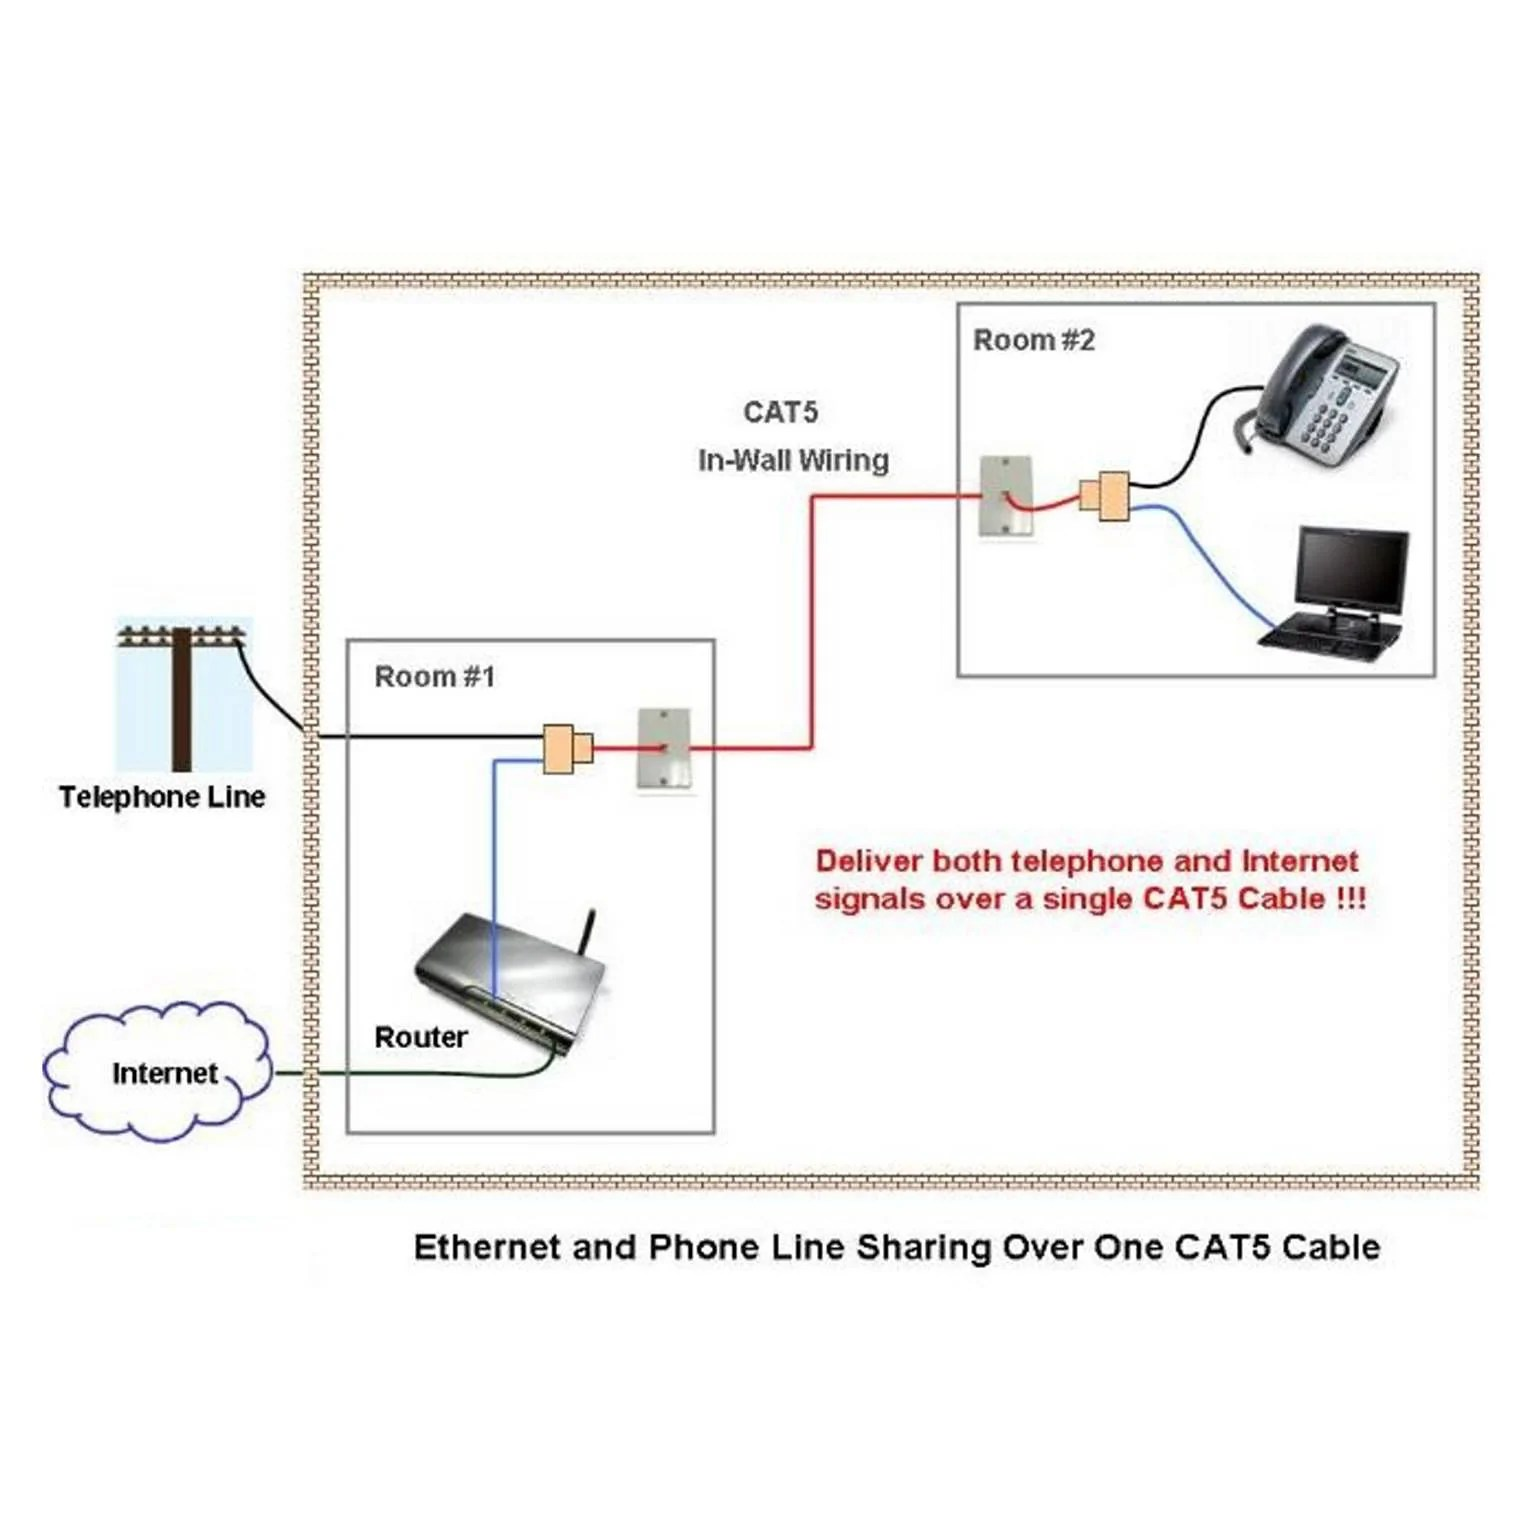 small resolution of ethernet phone wiring diagram wiring diagram ameethernet phone wiring diagram wiring diagram fascinating ethernet phone wiring